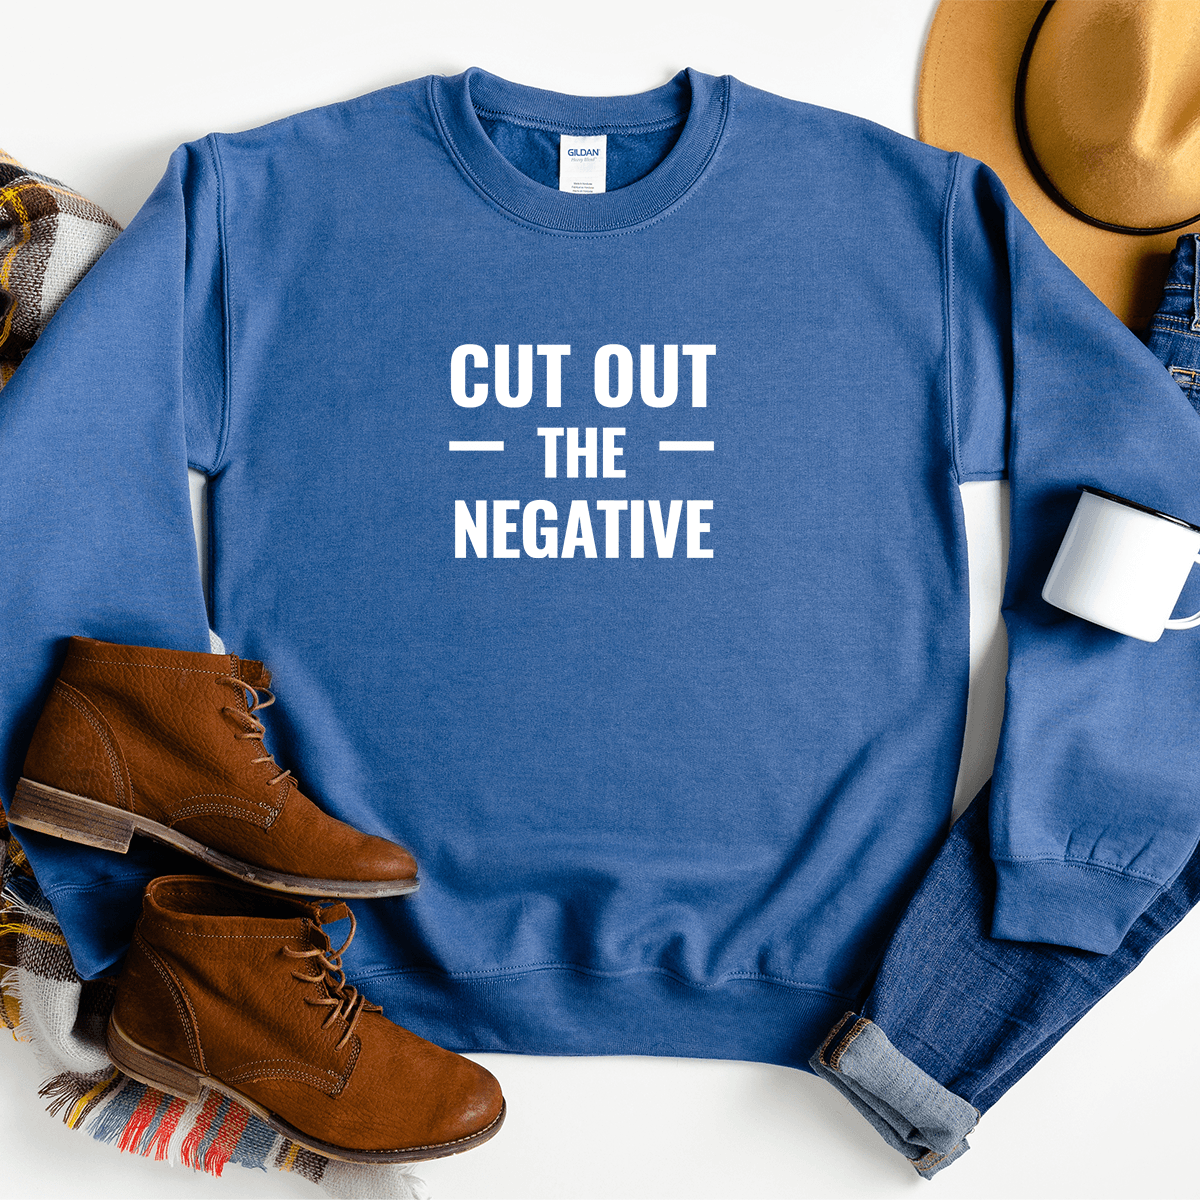 Cut Out The Negative - Sweatshirt